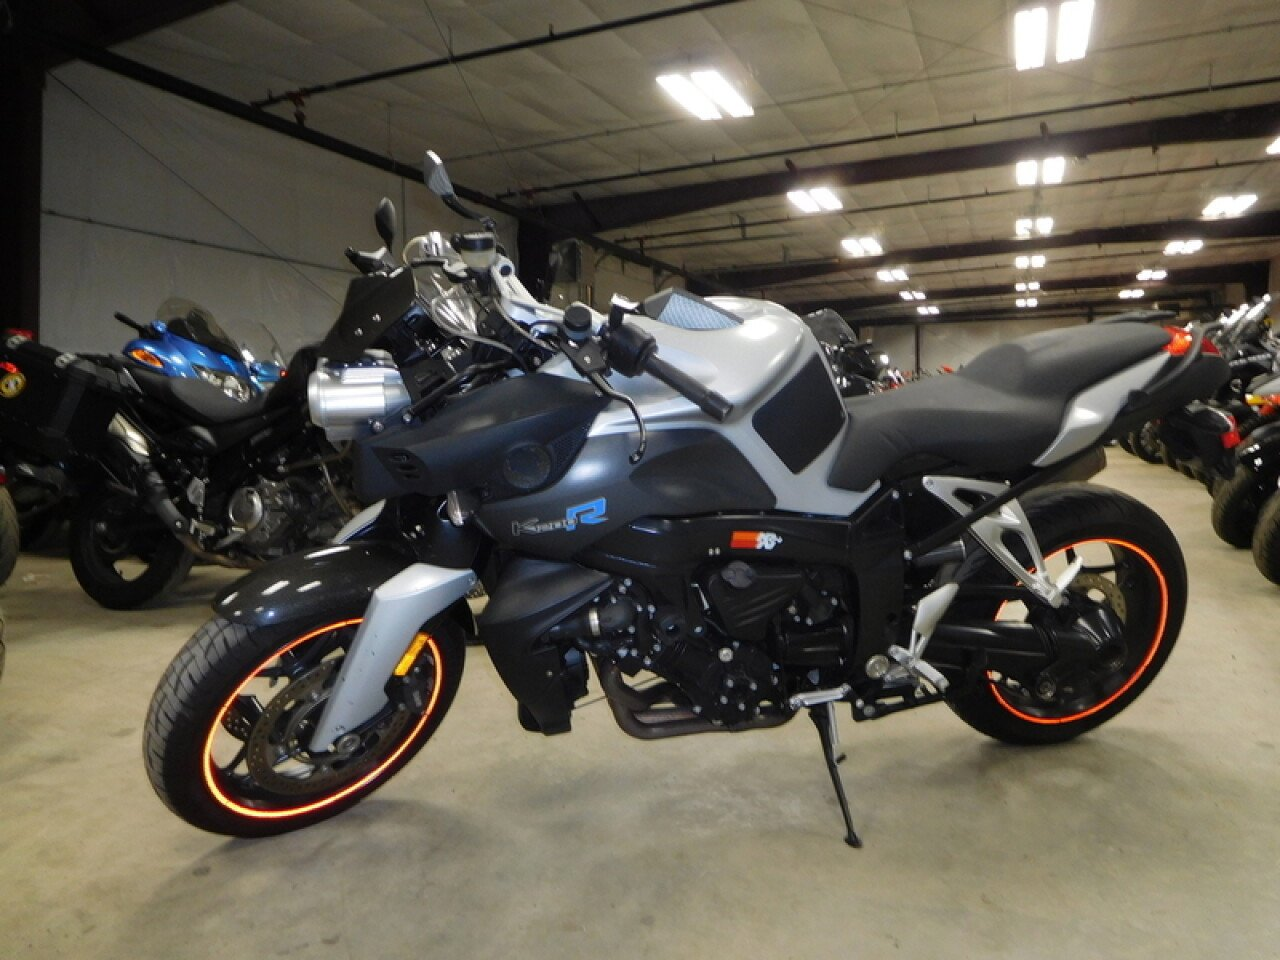 2006 BMW K1200R Motorcycles for Sale   Motorcycles on Autotrader